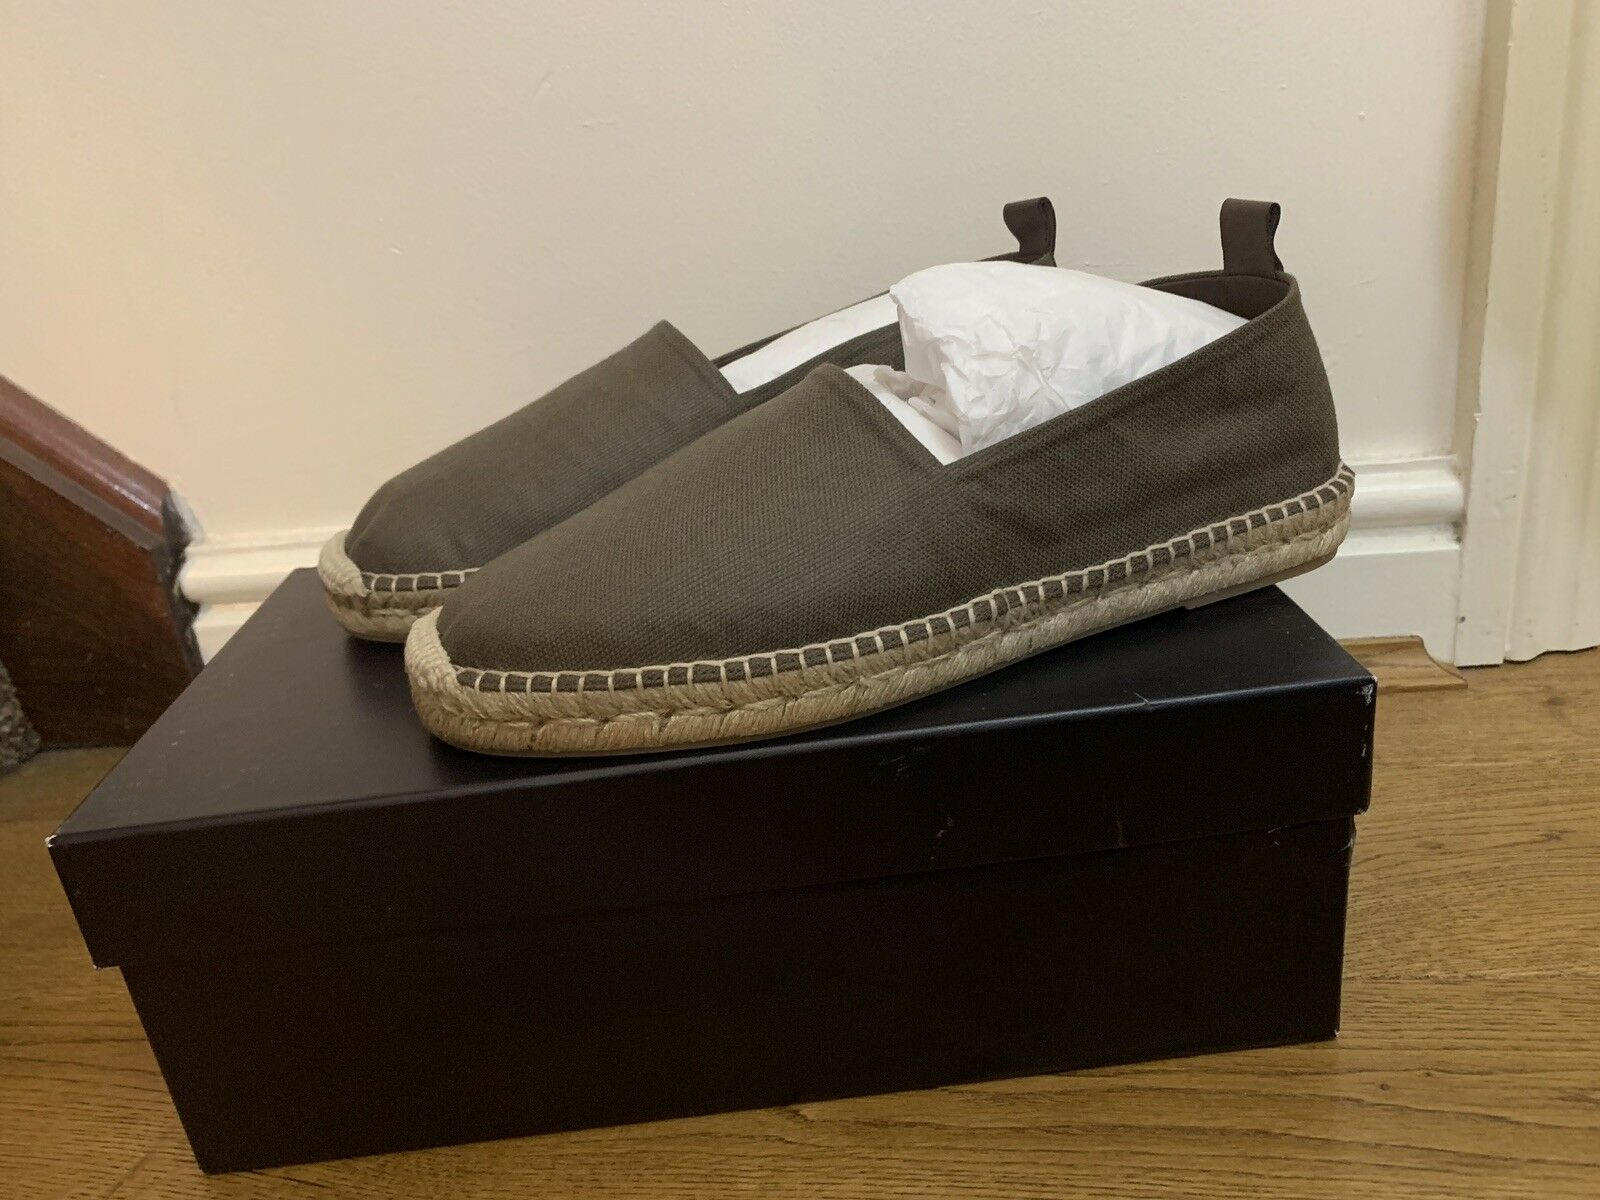 BNIB RALPH LAUREN PURPLE LABEL BOWSWORTH CASUAL ESPADRILLES SHOES IN TAUPE